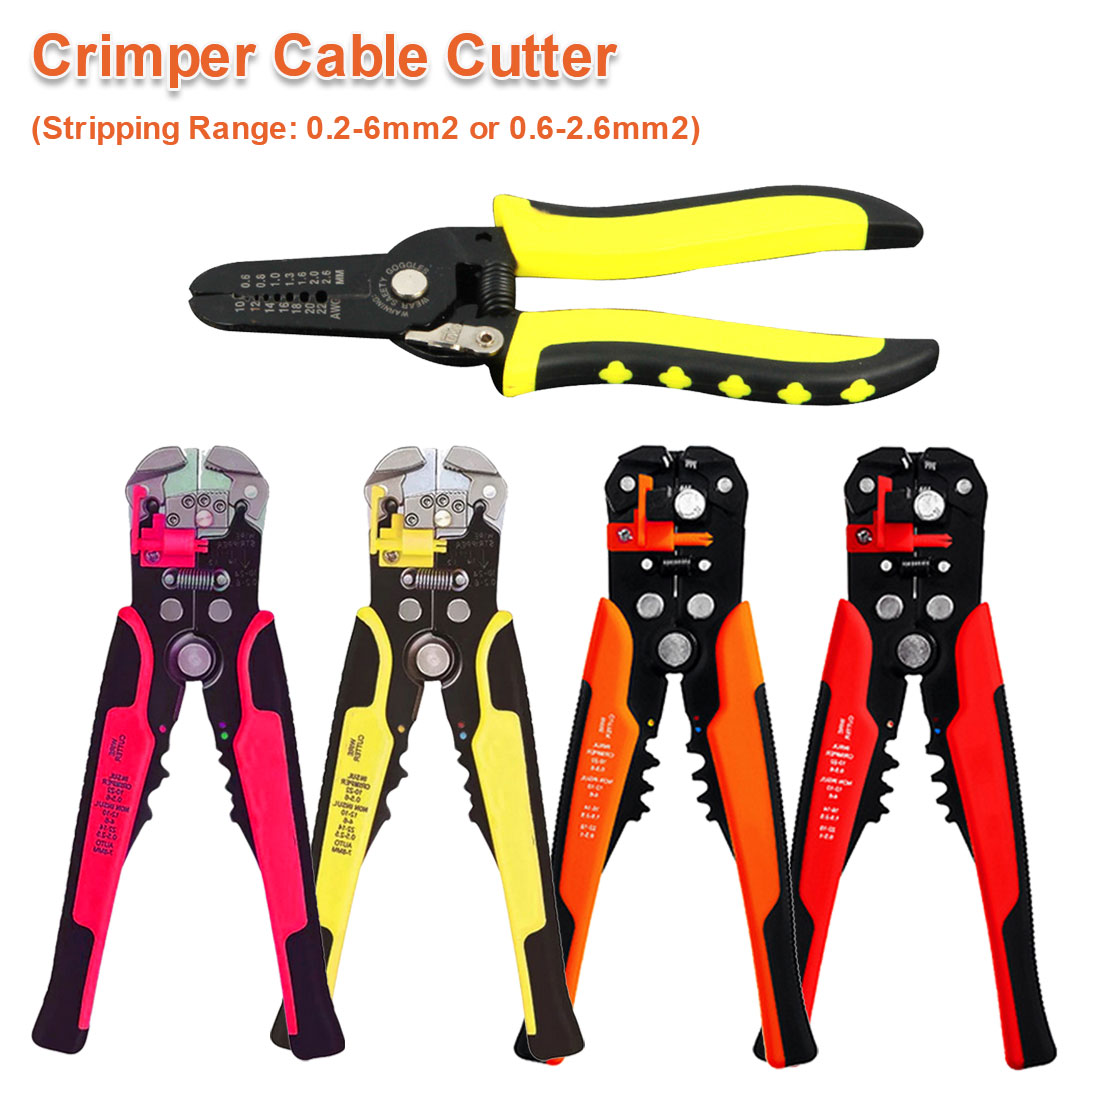 Automatic Wire Stripper Cable Cutter Multifunctional Wire Stripping Tool Crimping Pliers Cable Crimper 24-10AWG/ 0.2-6mm2 Tool